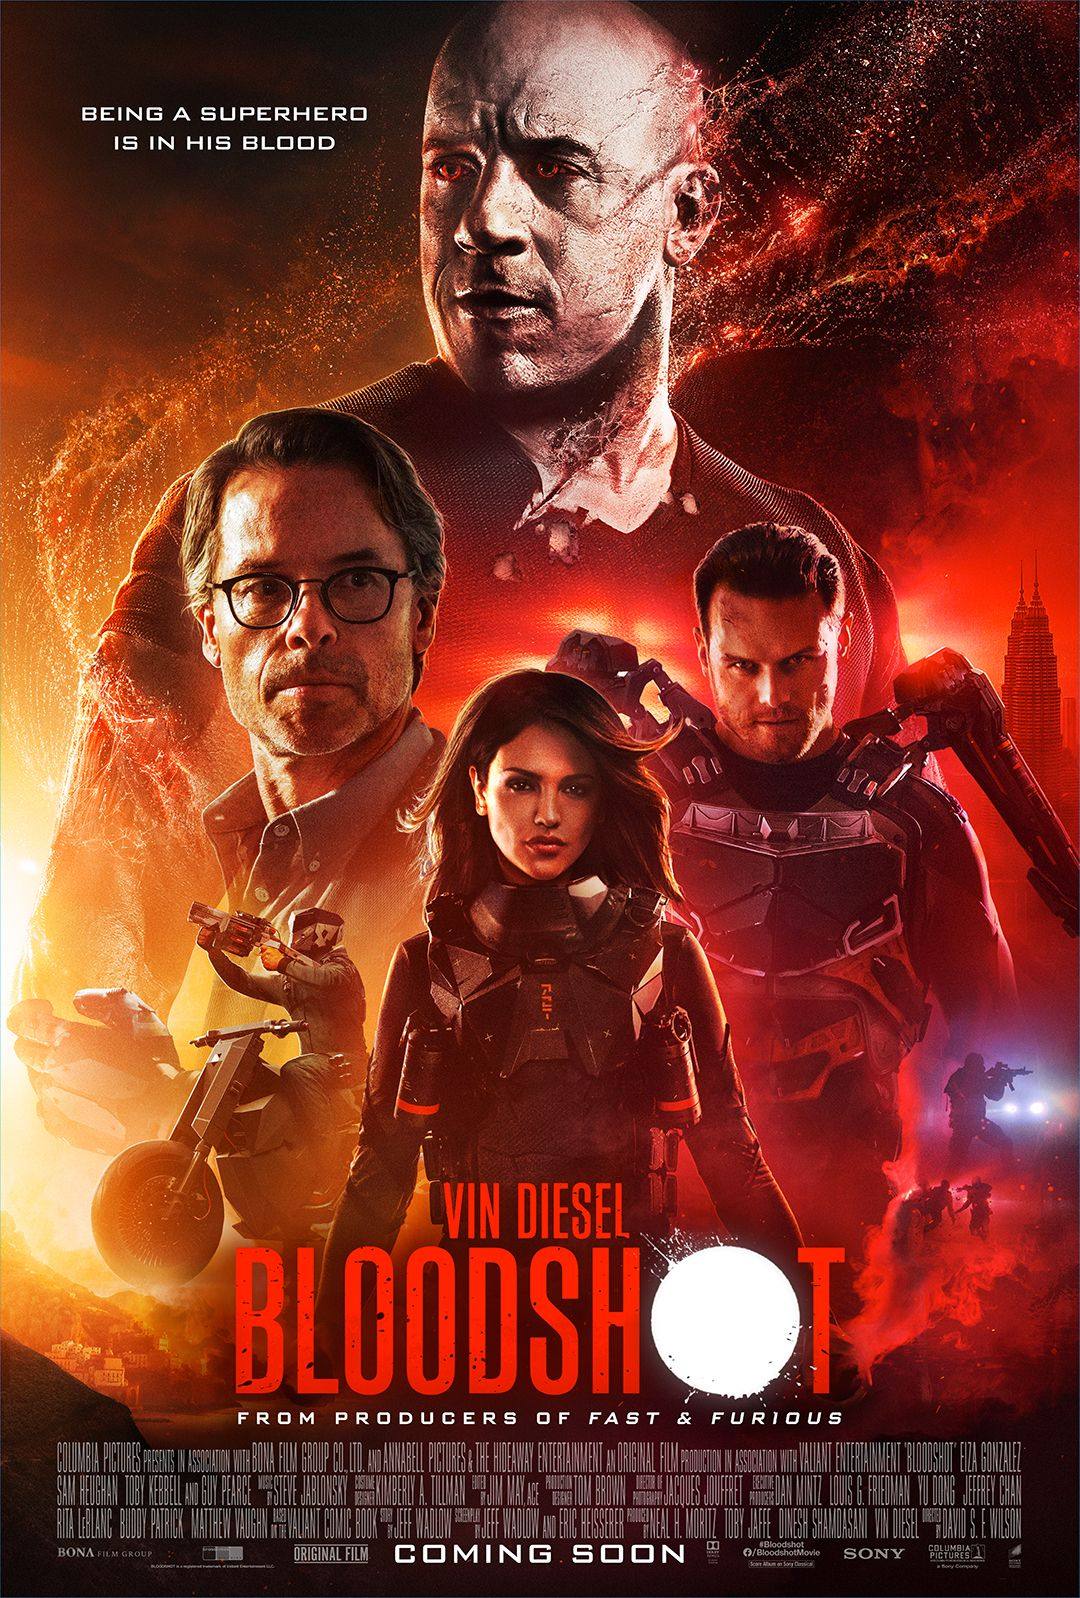 Check Out The New International Poster For Bloodshot And Get